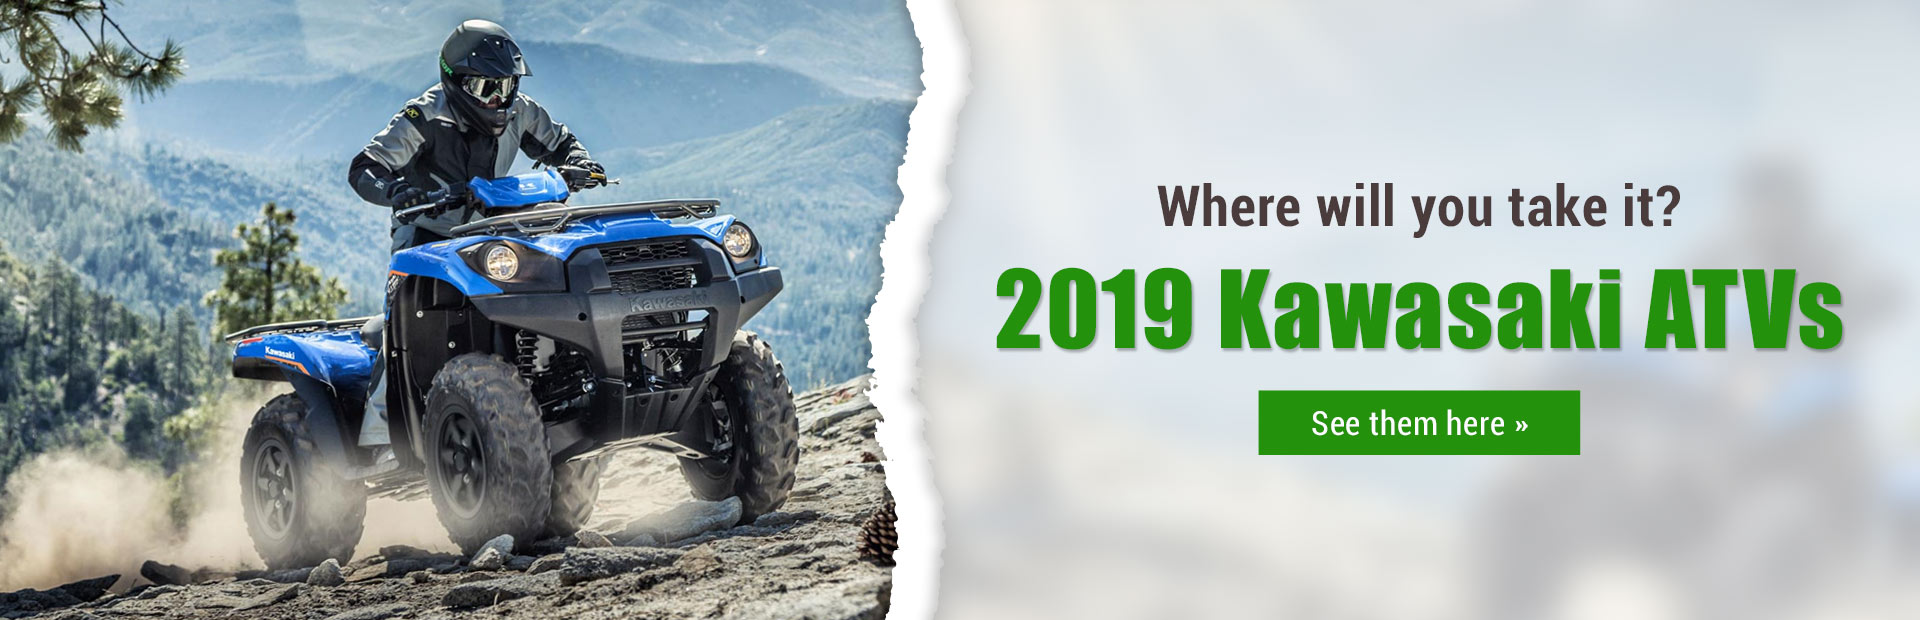 2019 Kawasaki ATVs: Click here to view the models.